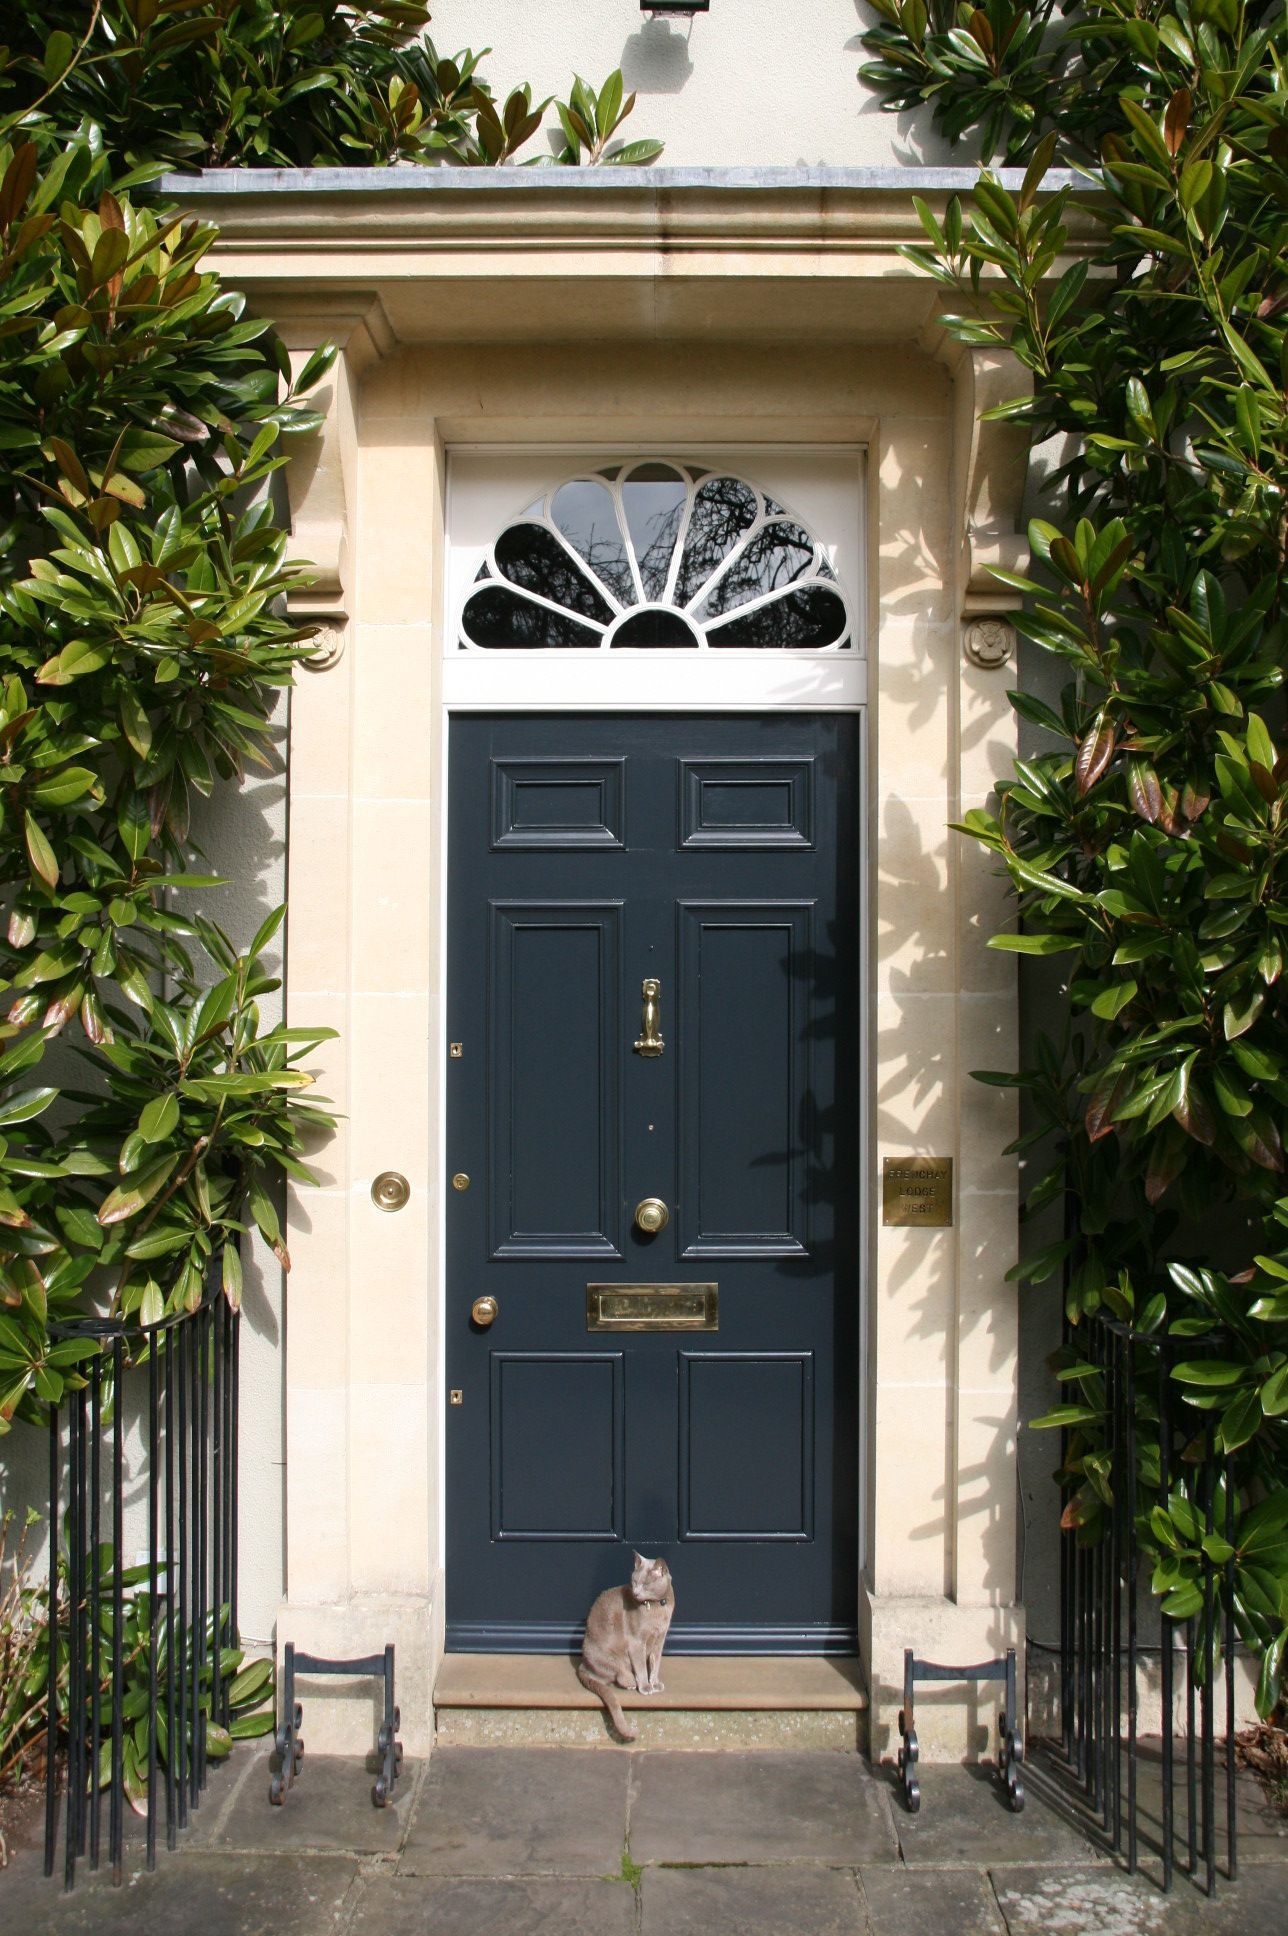 Farrow Ball Best Exterior Door Colour Gallery Winning Entry Clare Winsor Uk Railings No 31